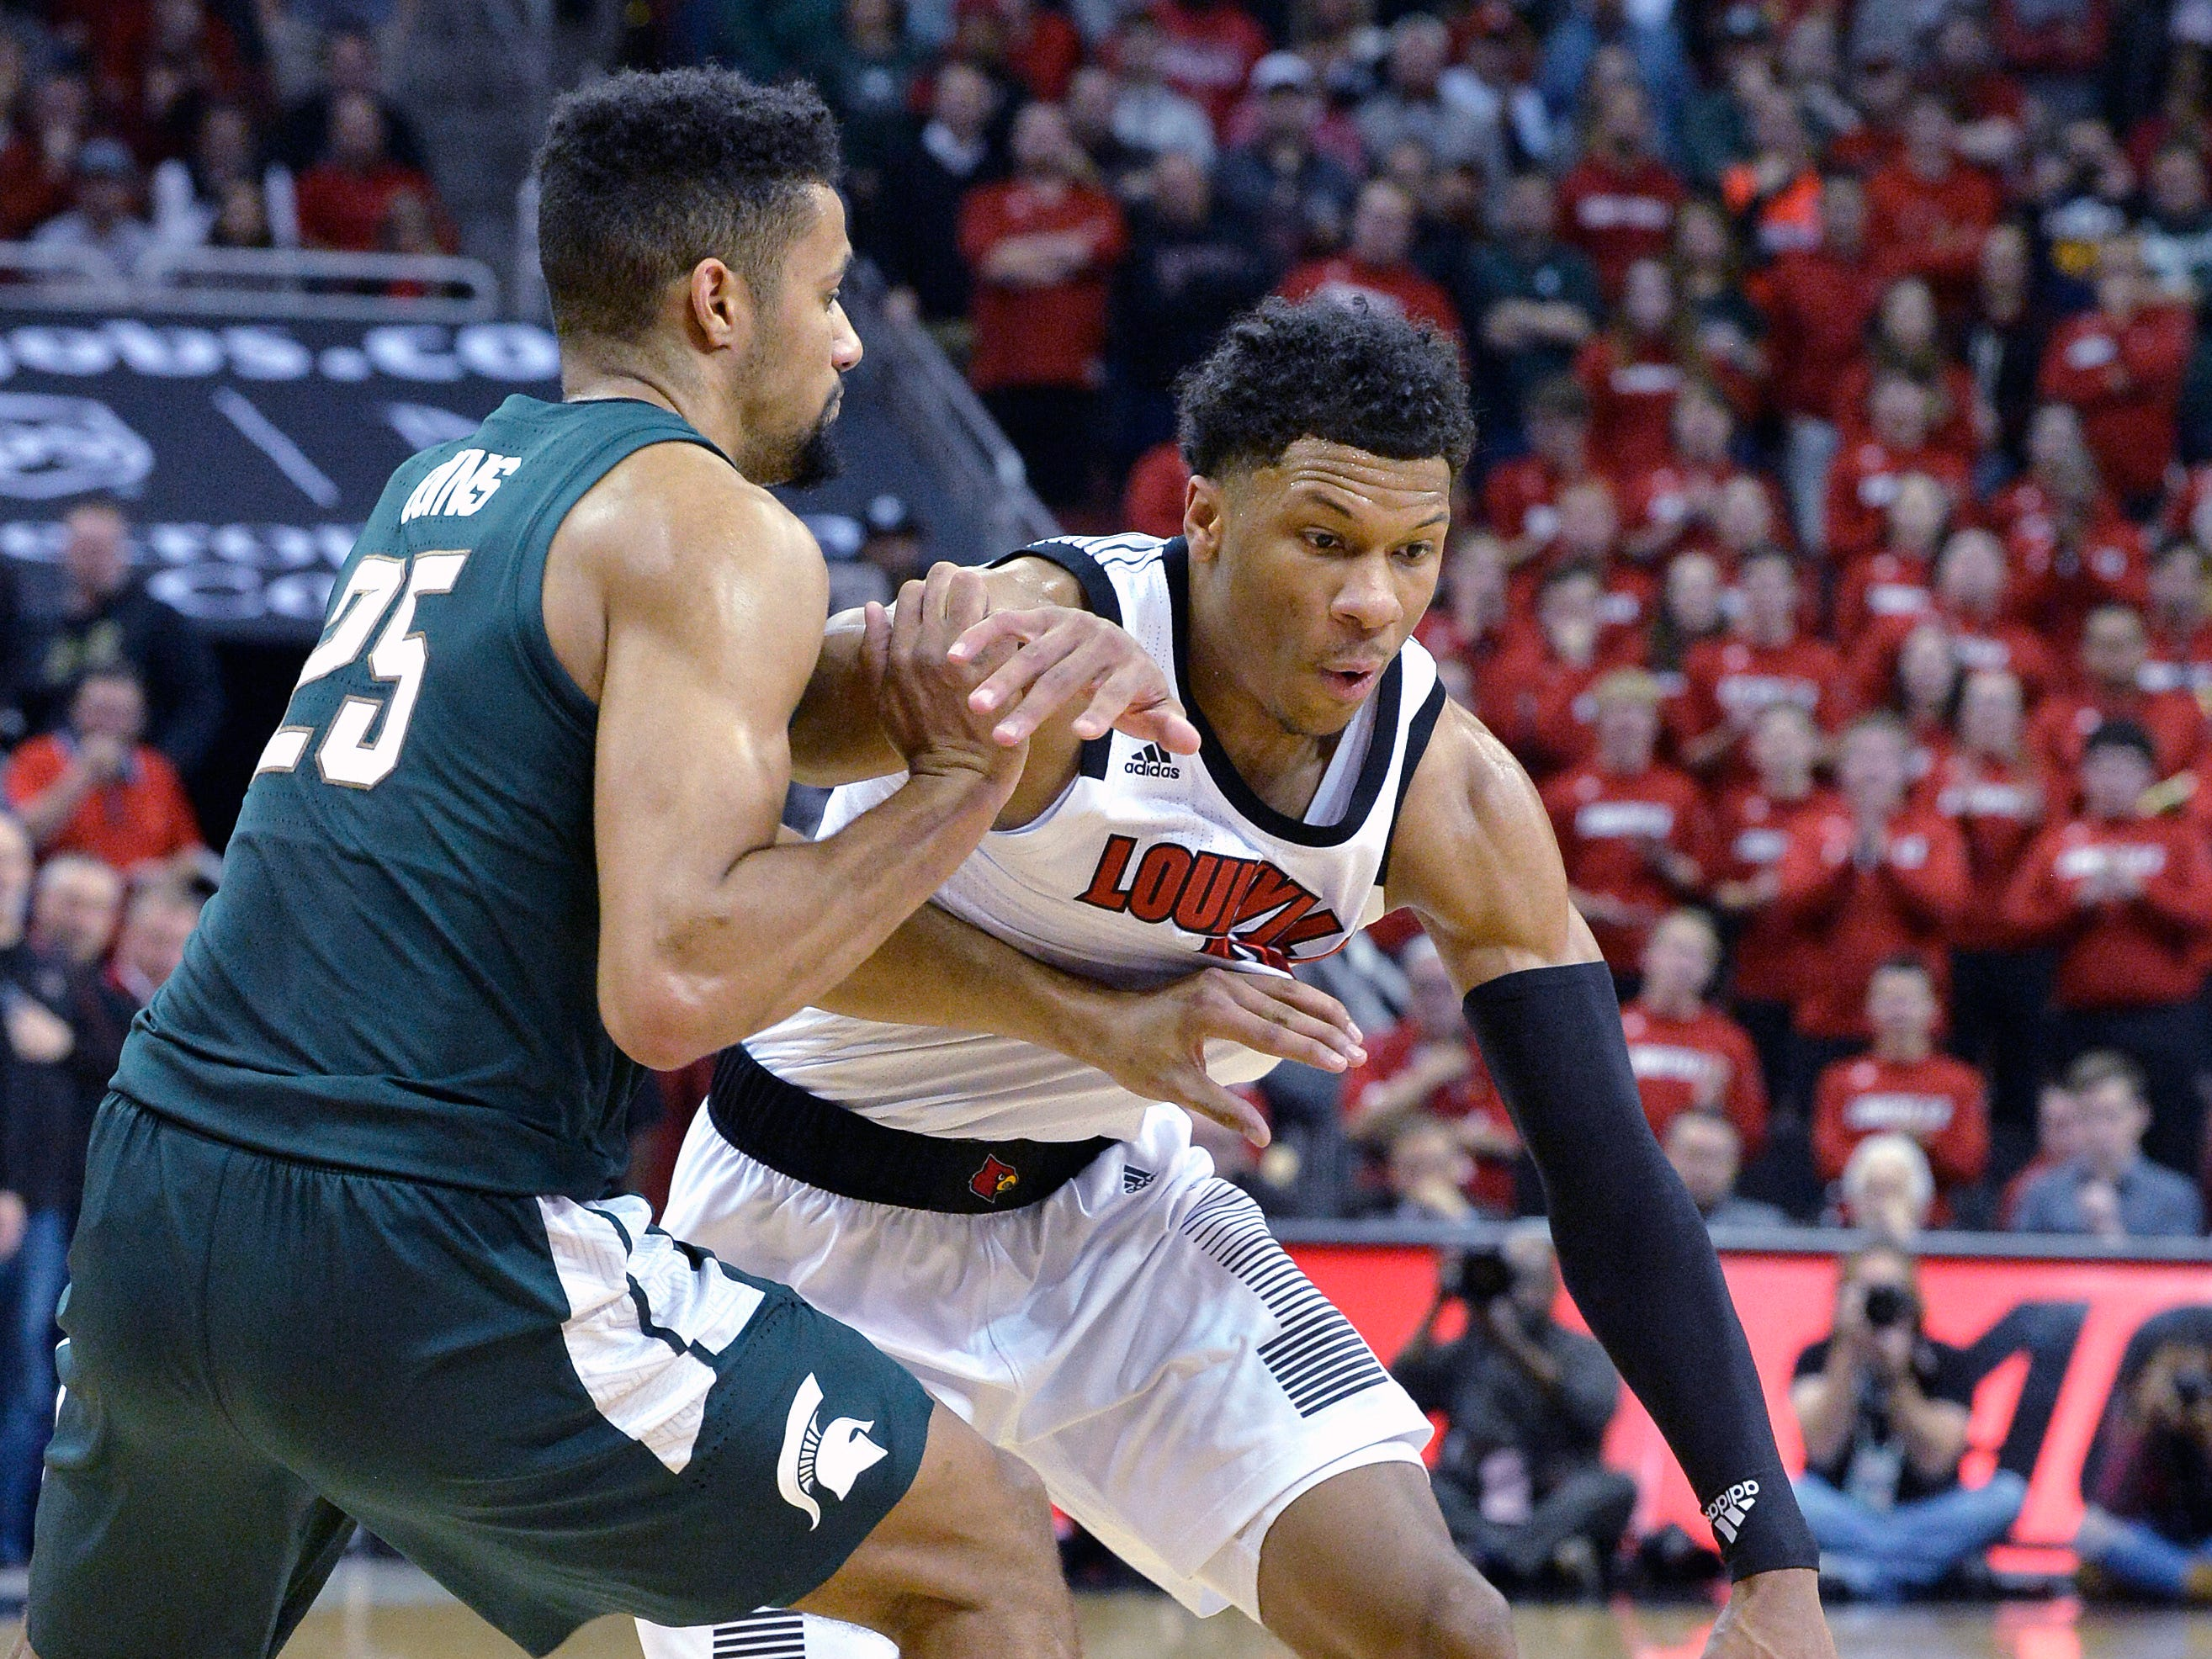 Louisville forward Dwayne Sutton (24) attempts to drive around the defense of Michigan State forward Kenny Goins (25) during the second half of an NCAA college basketball game, in Louisville, Ky., Tuesday, Nov. 27, 2018. Louisville won 82-78.